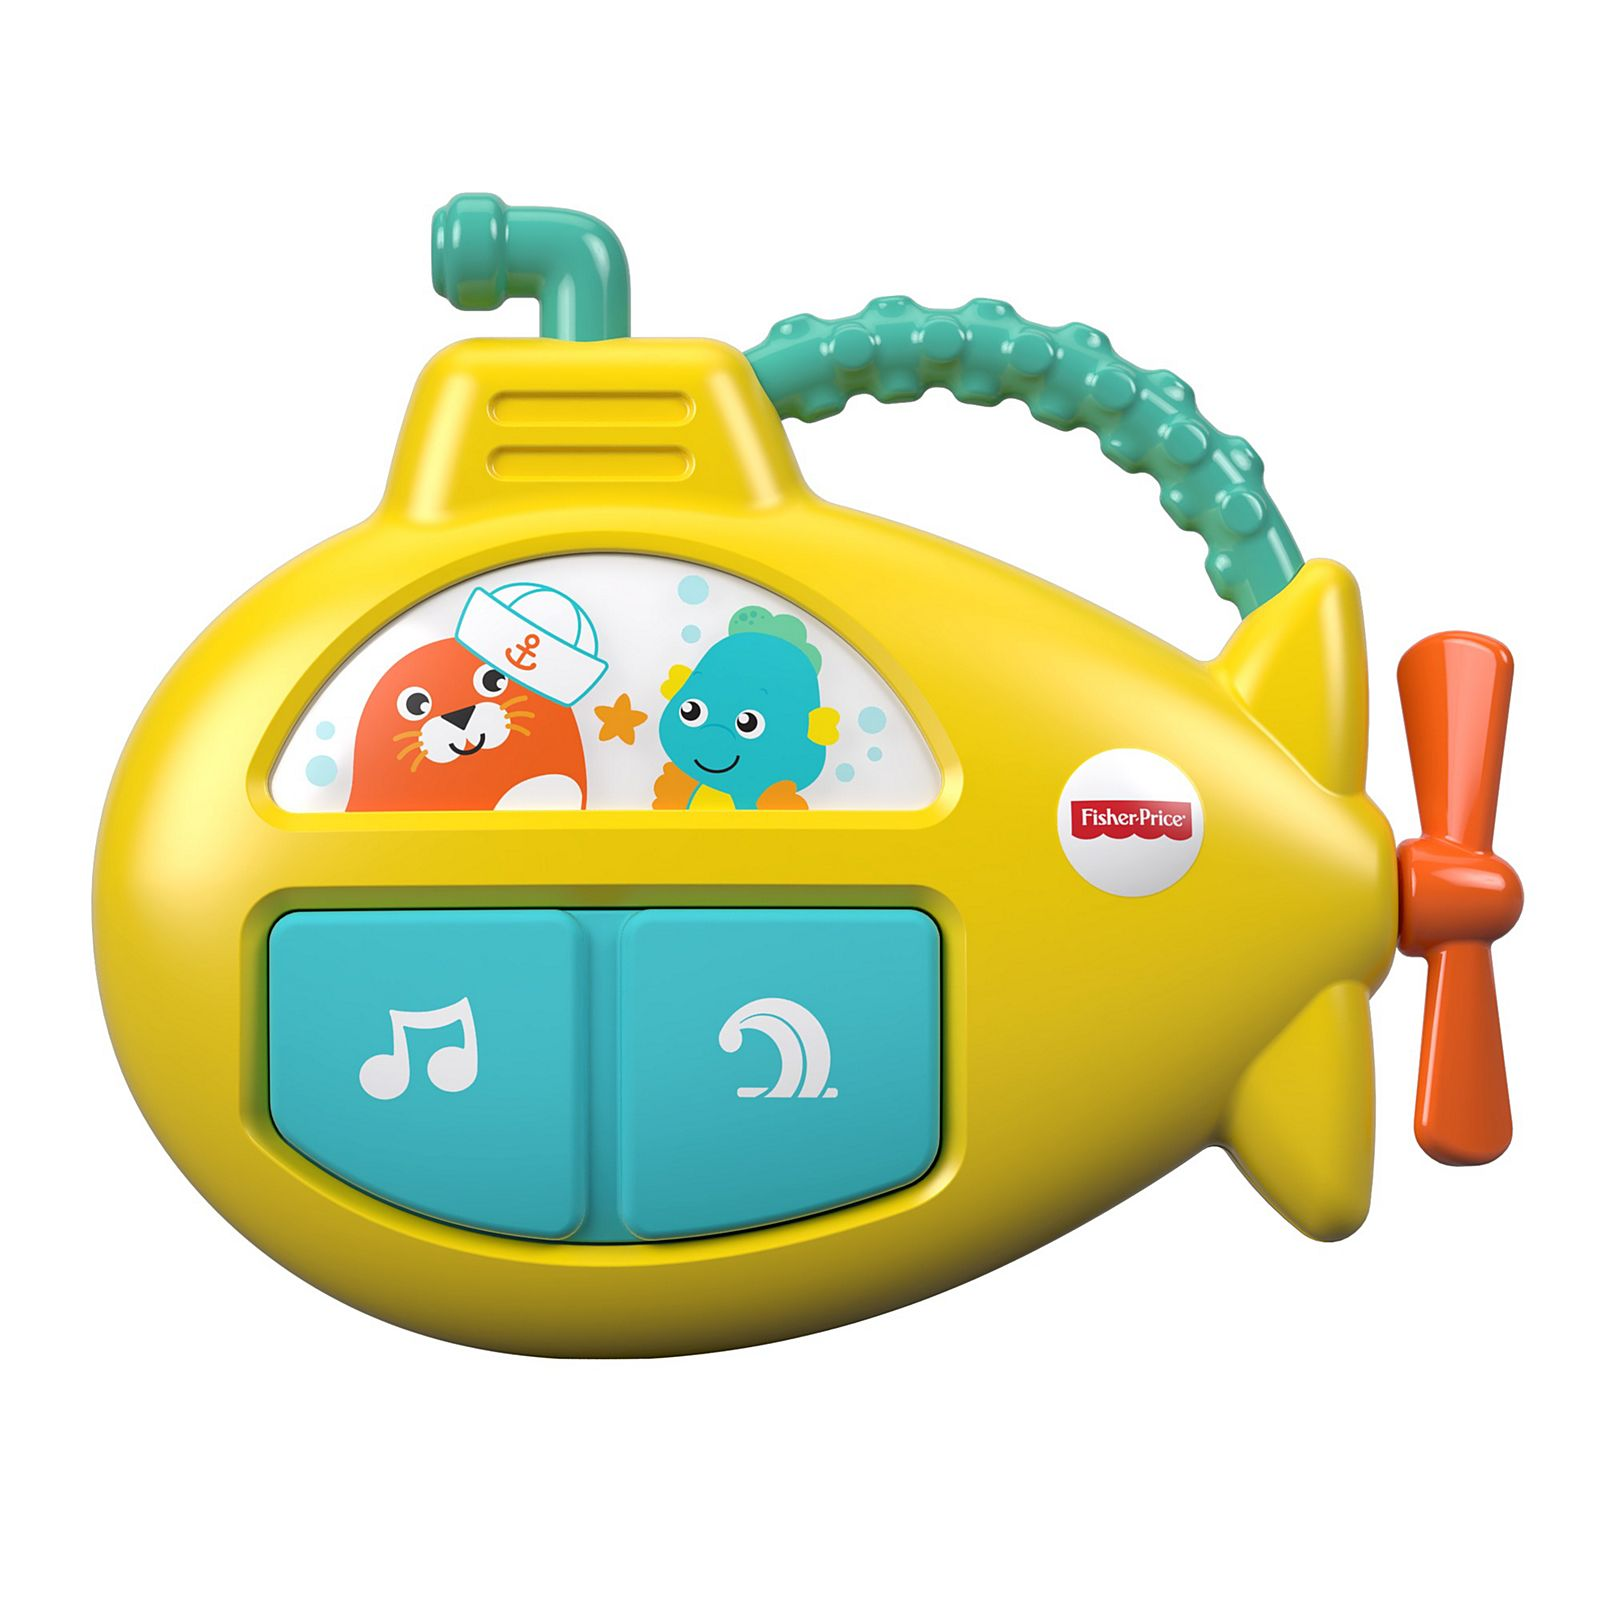 Submarino Musical On-the-go Fisher Price - Fxc02